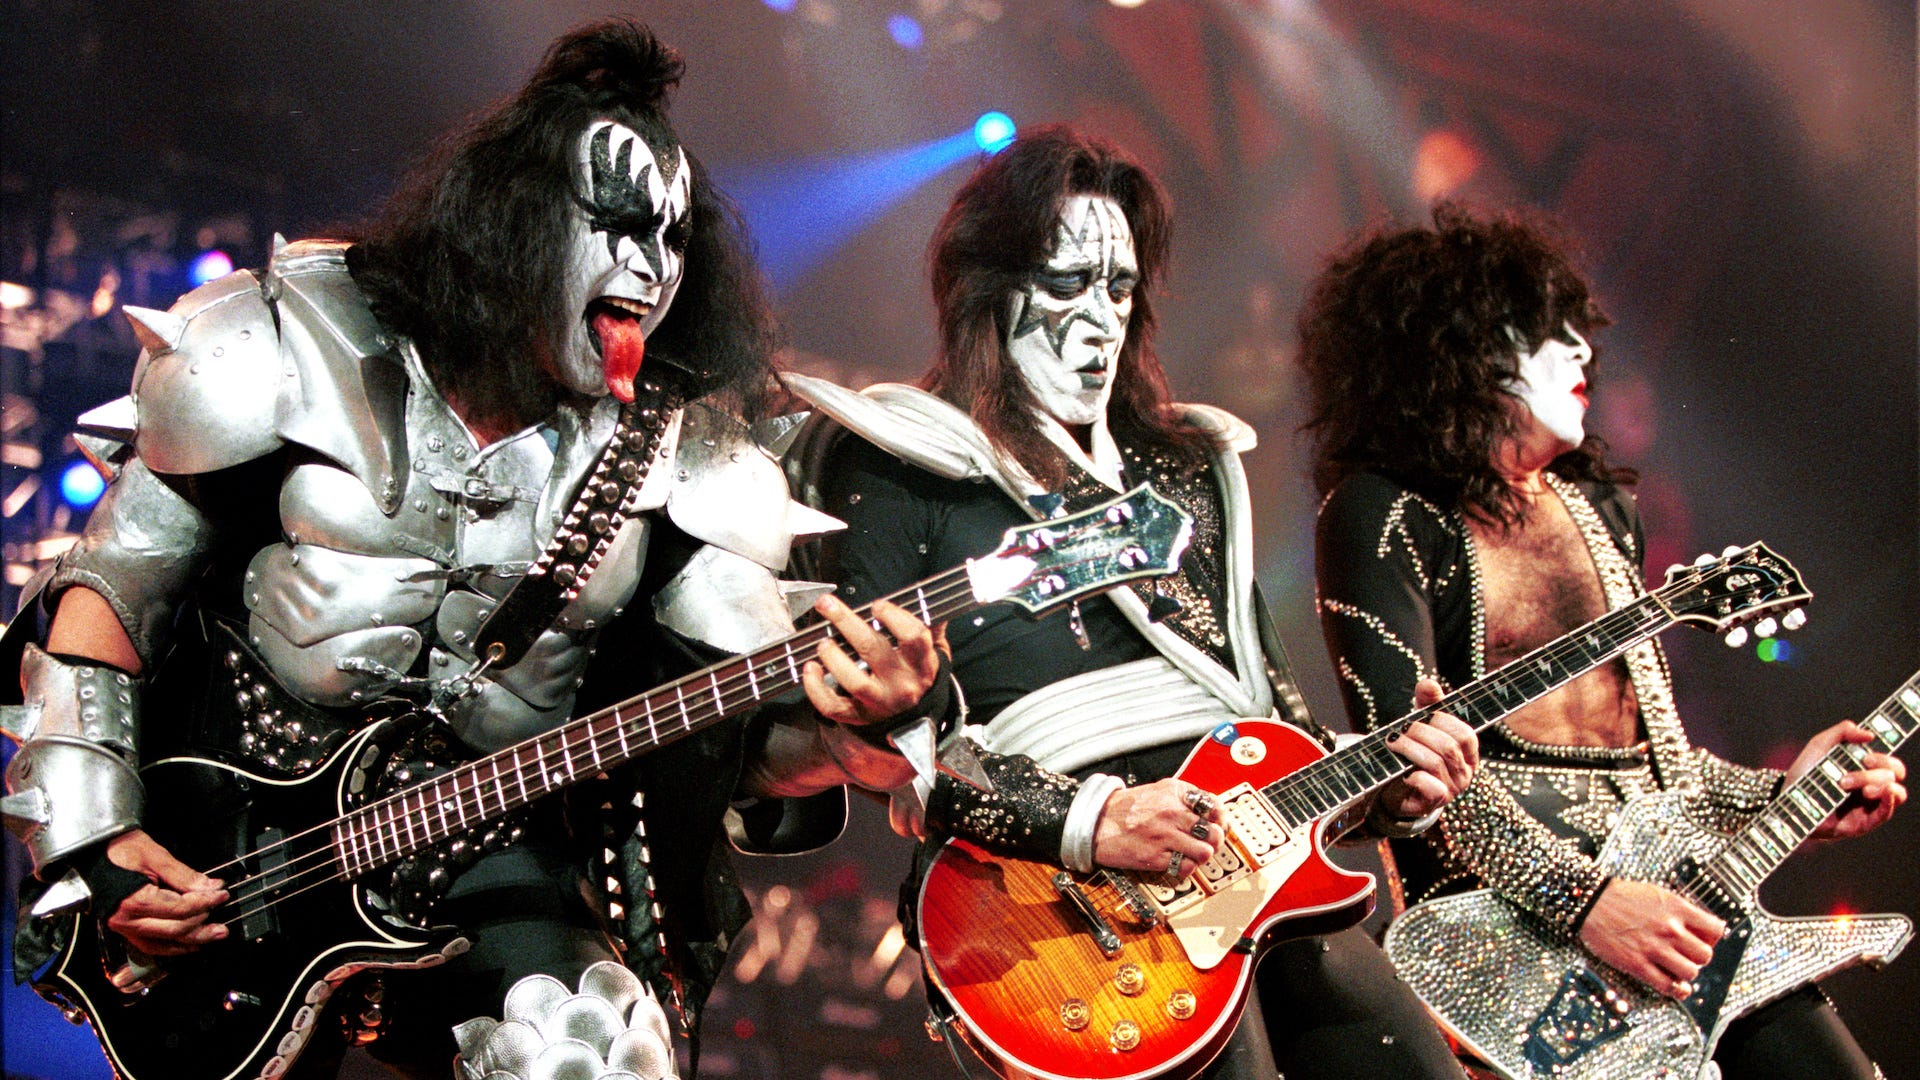 Paul Stanley open to Ace Frehley, Peter Criss returning to KISS for final tour